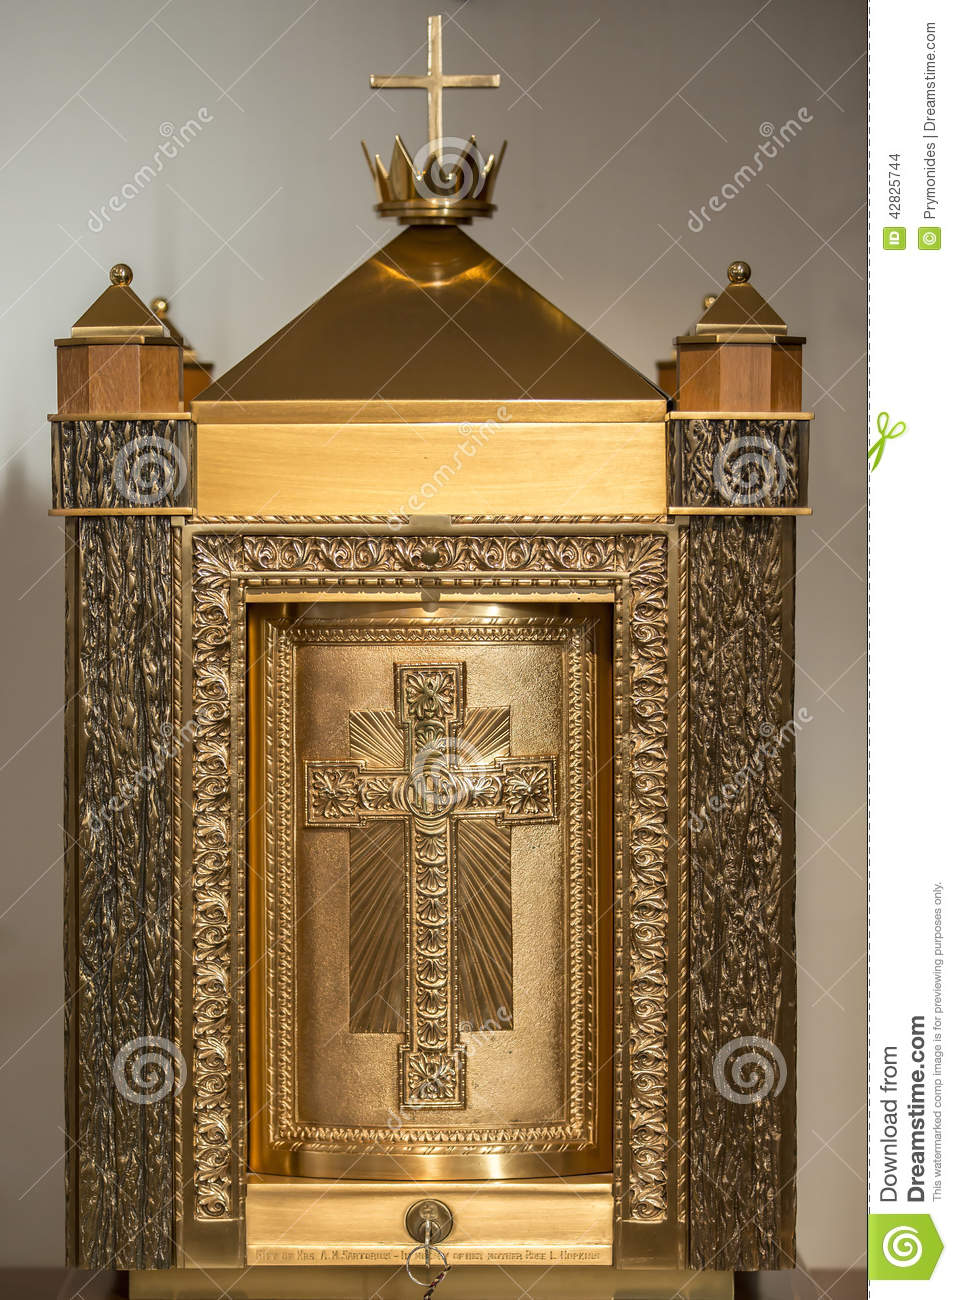 Stock Photo Church Tabernacle Catholic Gold Neutral Background Image42825744 on Good Church Business Cards